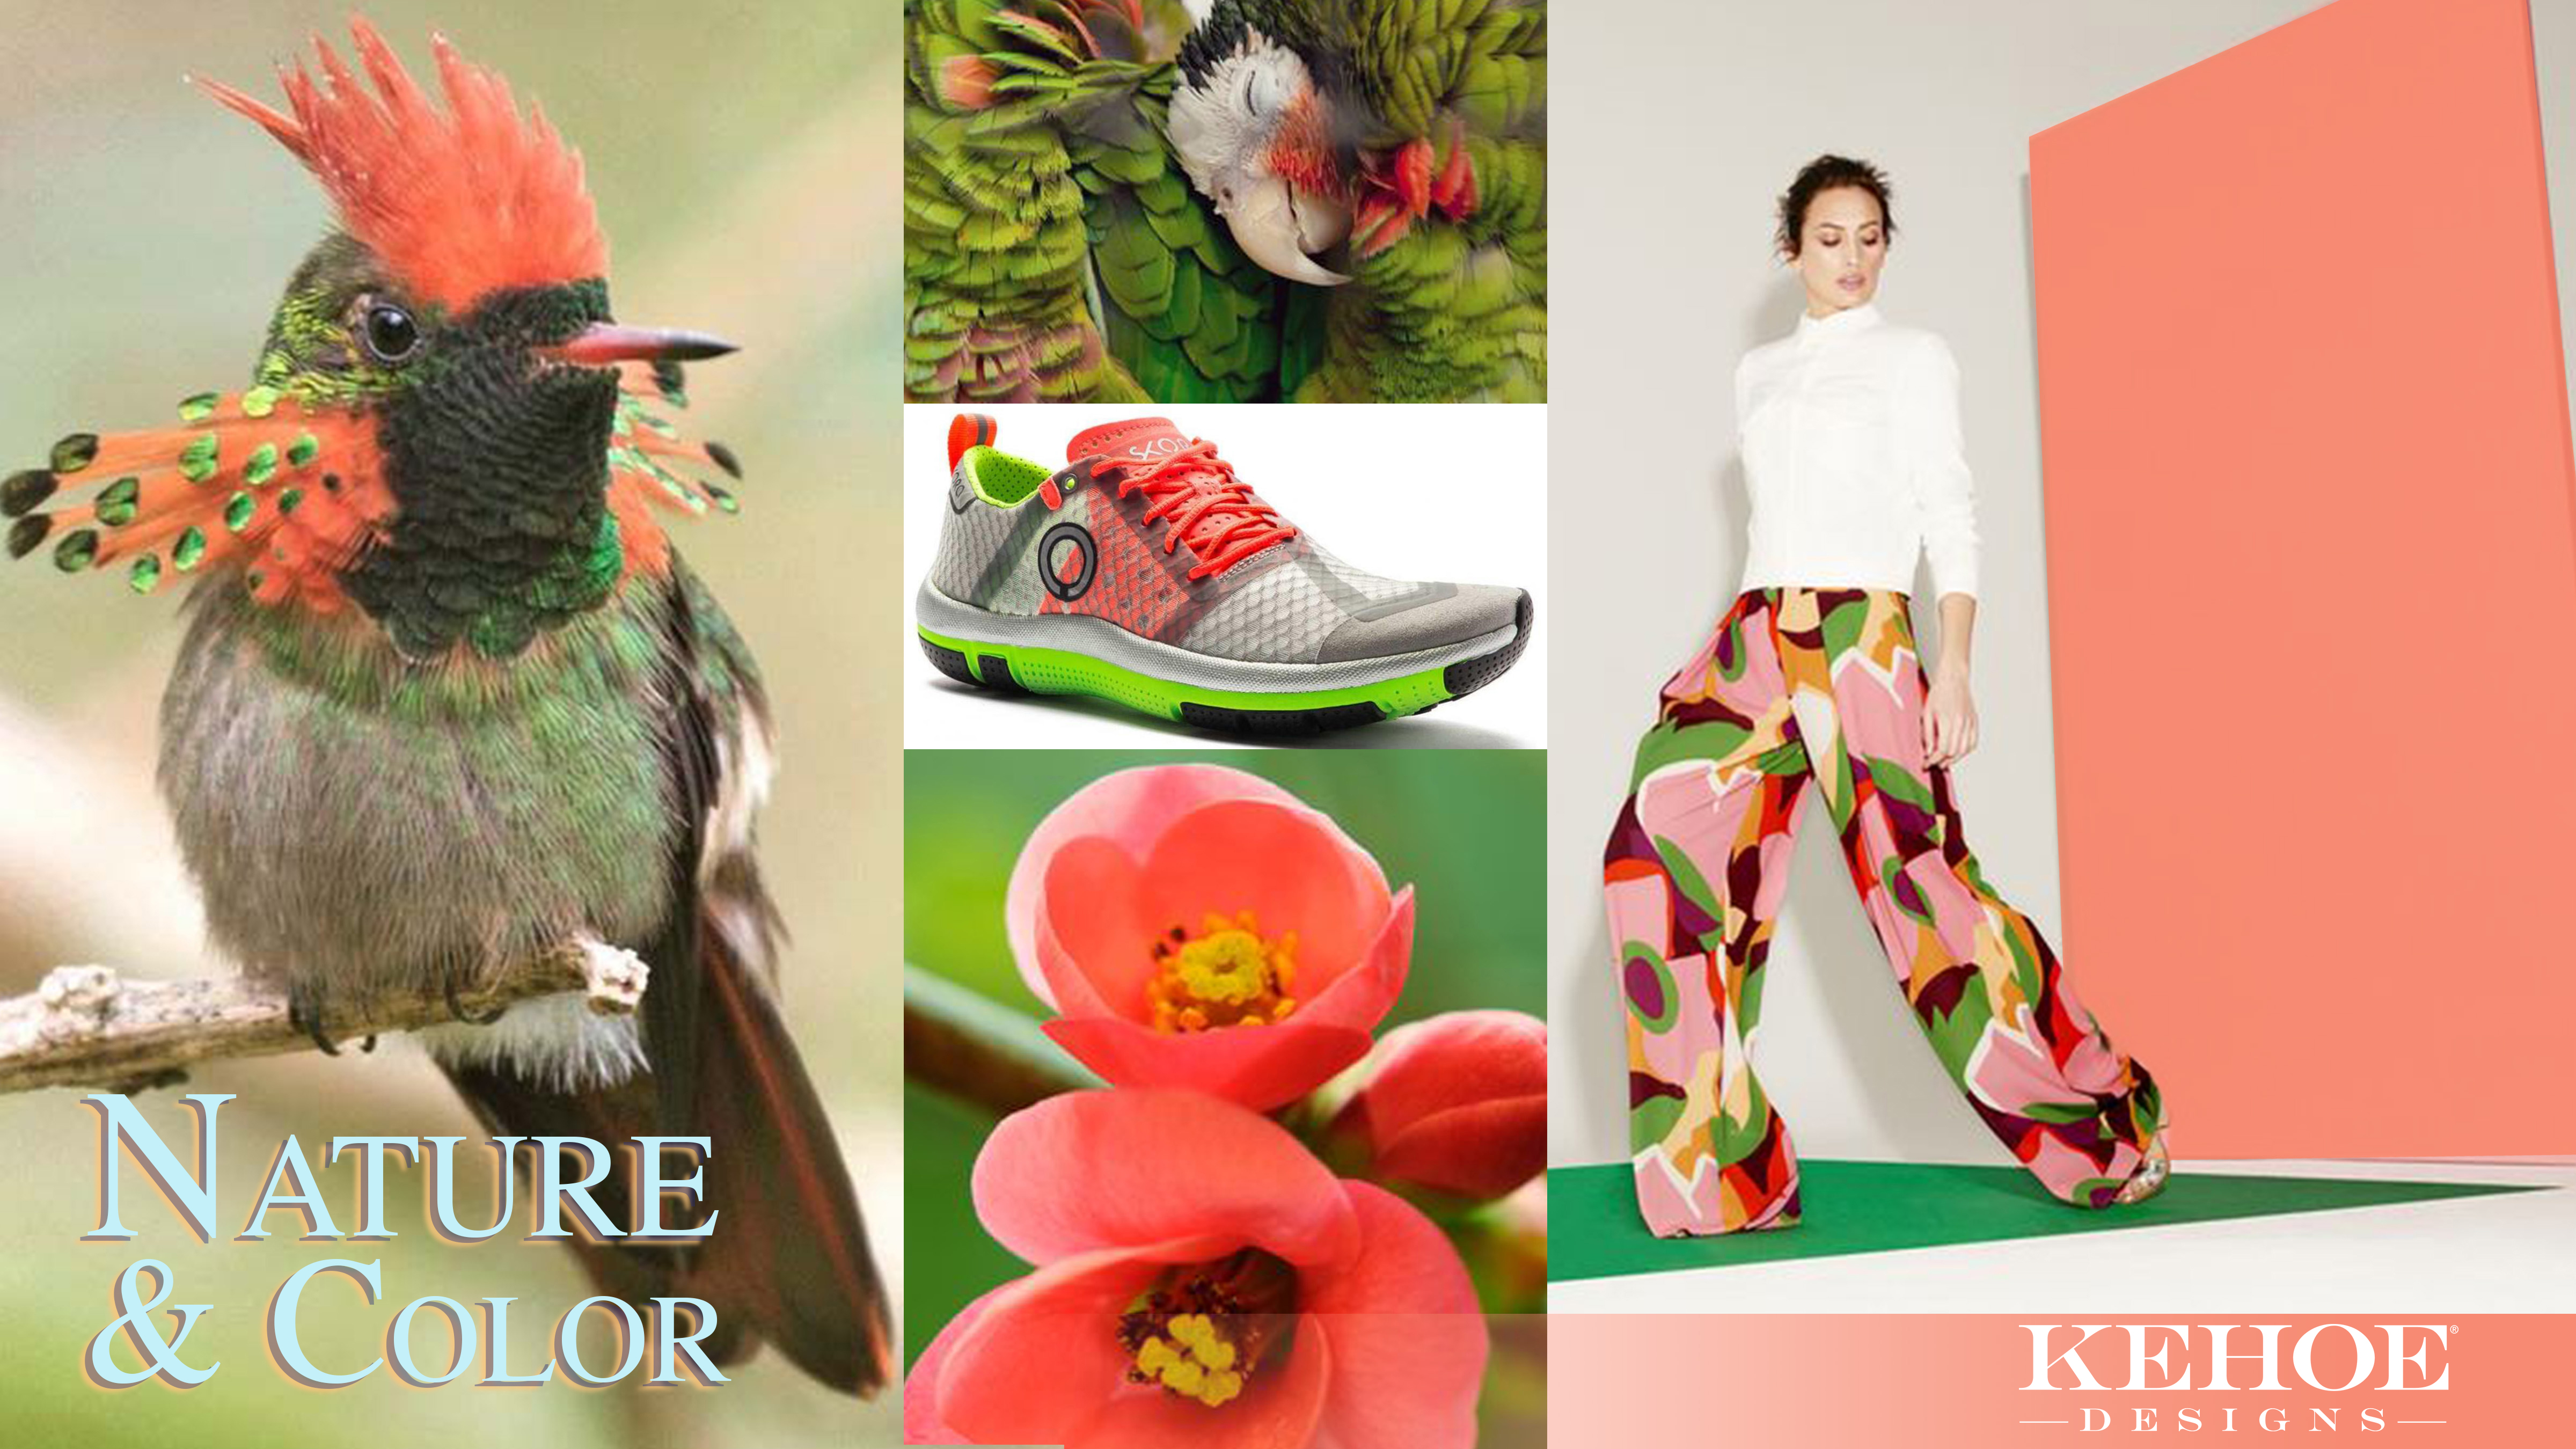 event design, trends, inspiration, mood board, Kehoe Designs, event decor, nature, color of the year